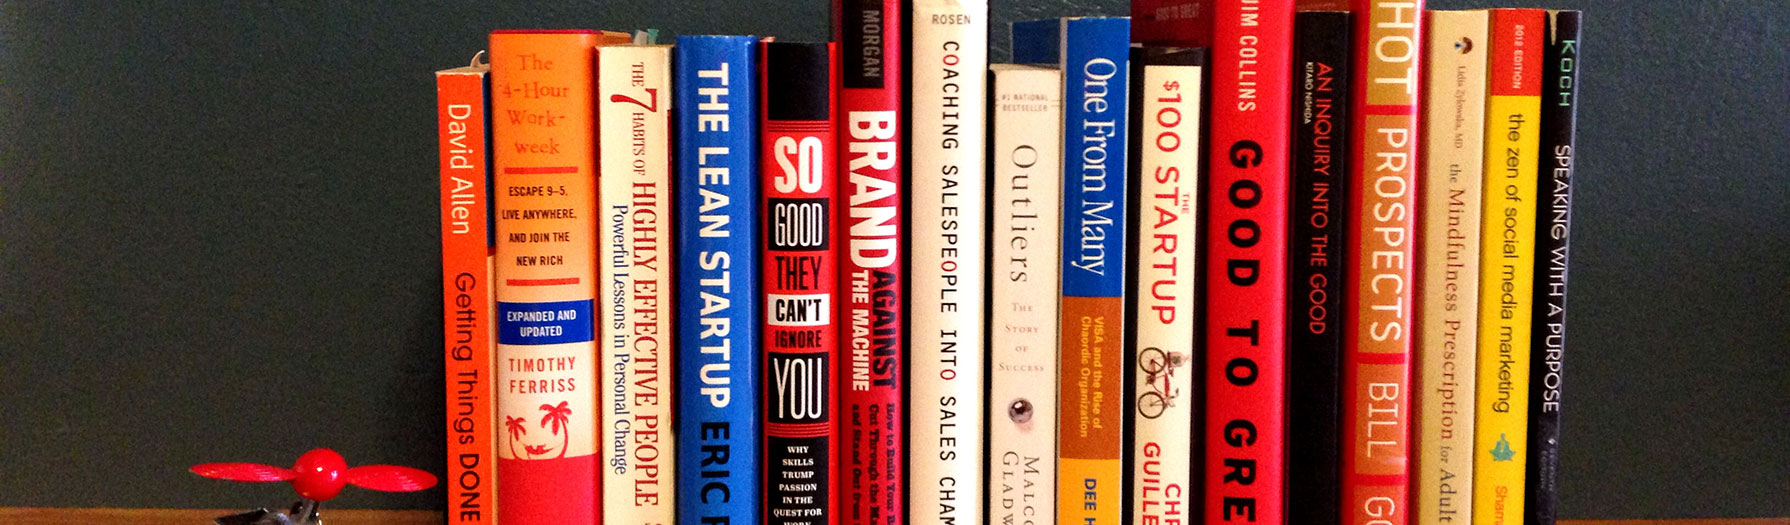 16 Books That Changed How I Work